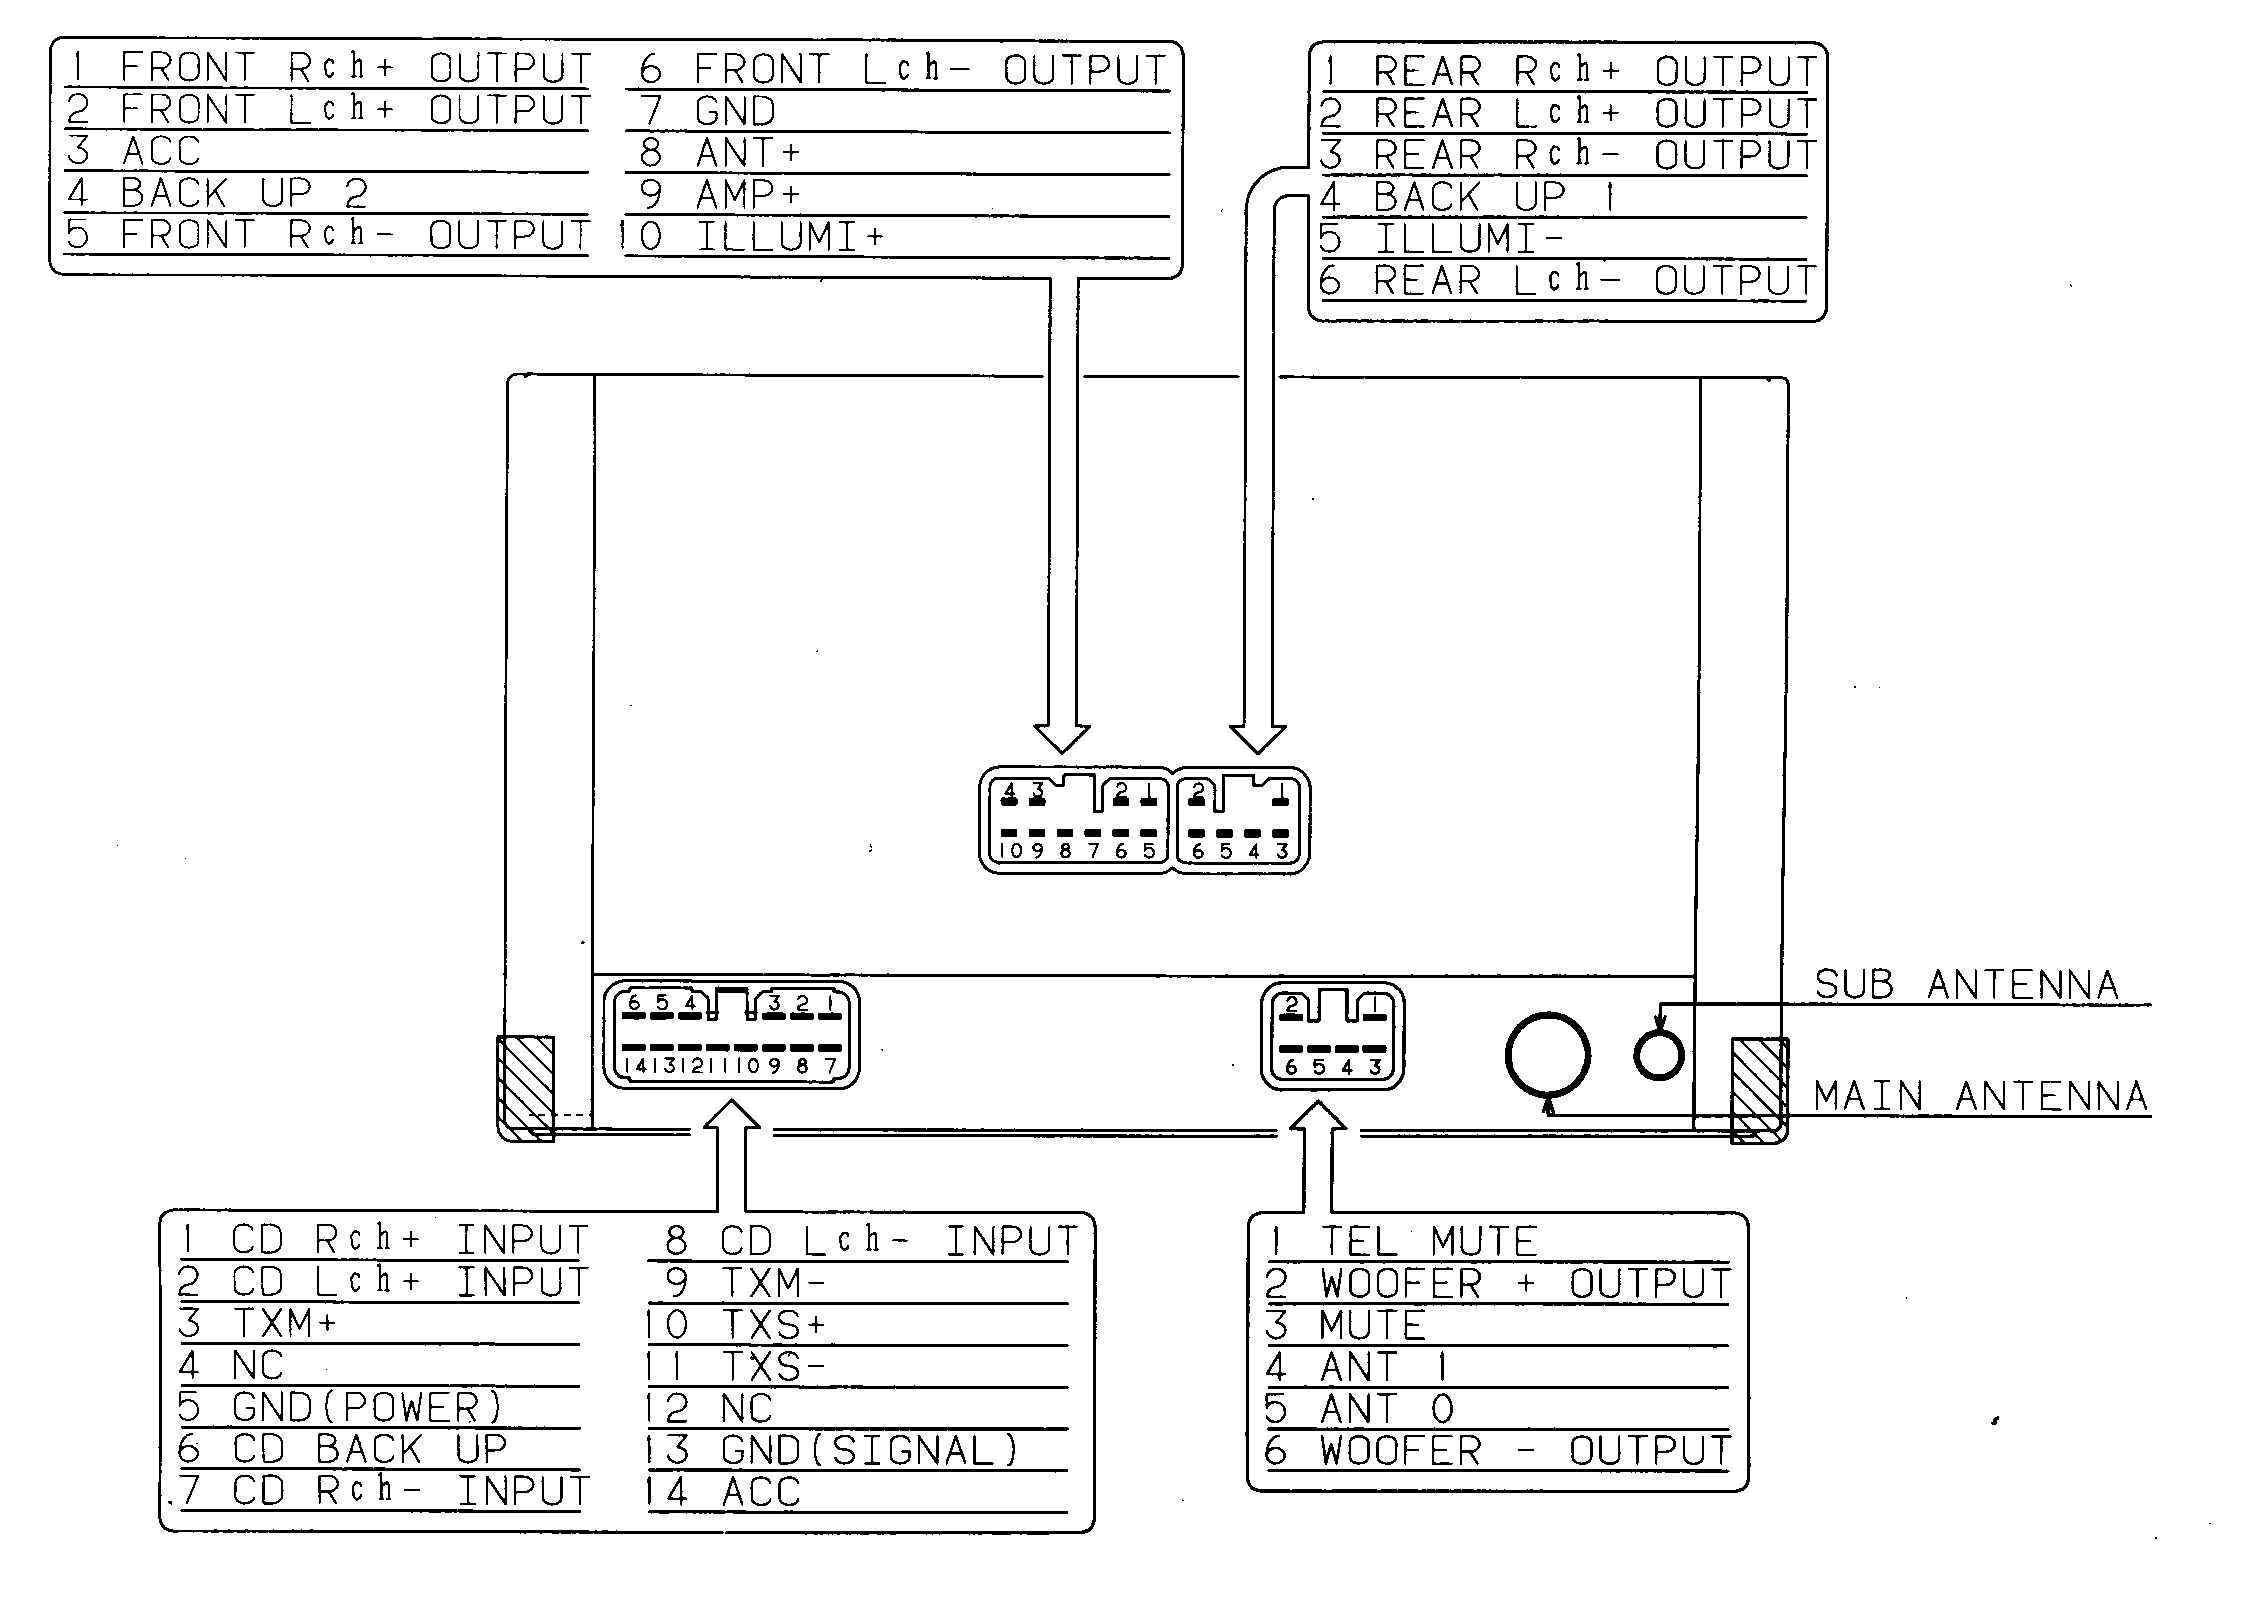 Lexus car stereo wiring diagram harness pinout connector wire 1996 jeep grand cherokee car stereo radio wiring diagram wiring 2002 jeep grand cherokee stereo wiring diagram at bakdesigns.co